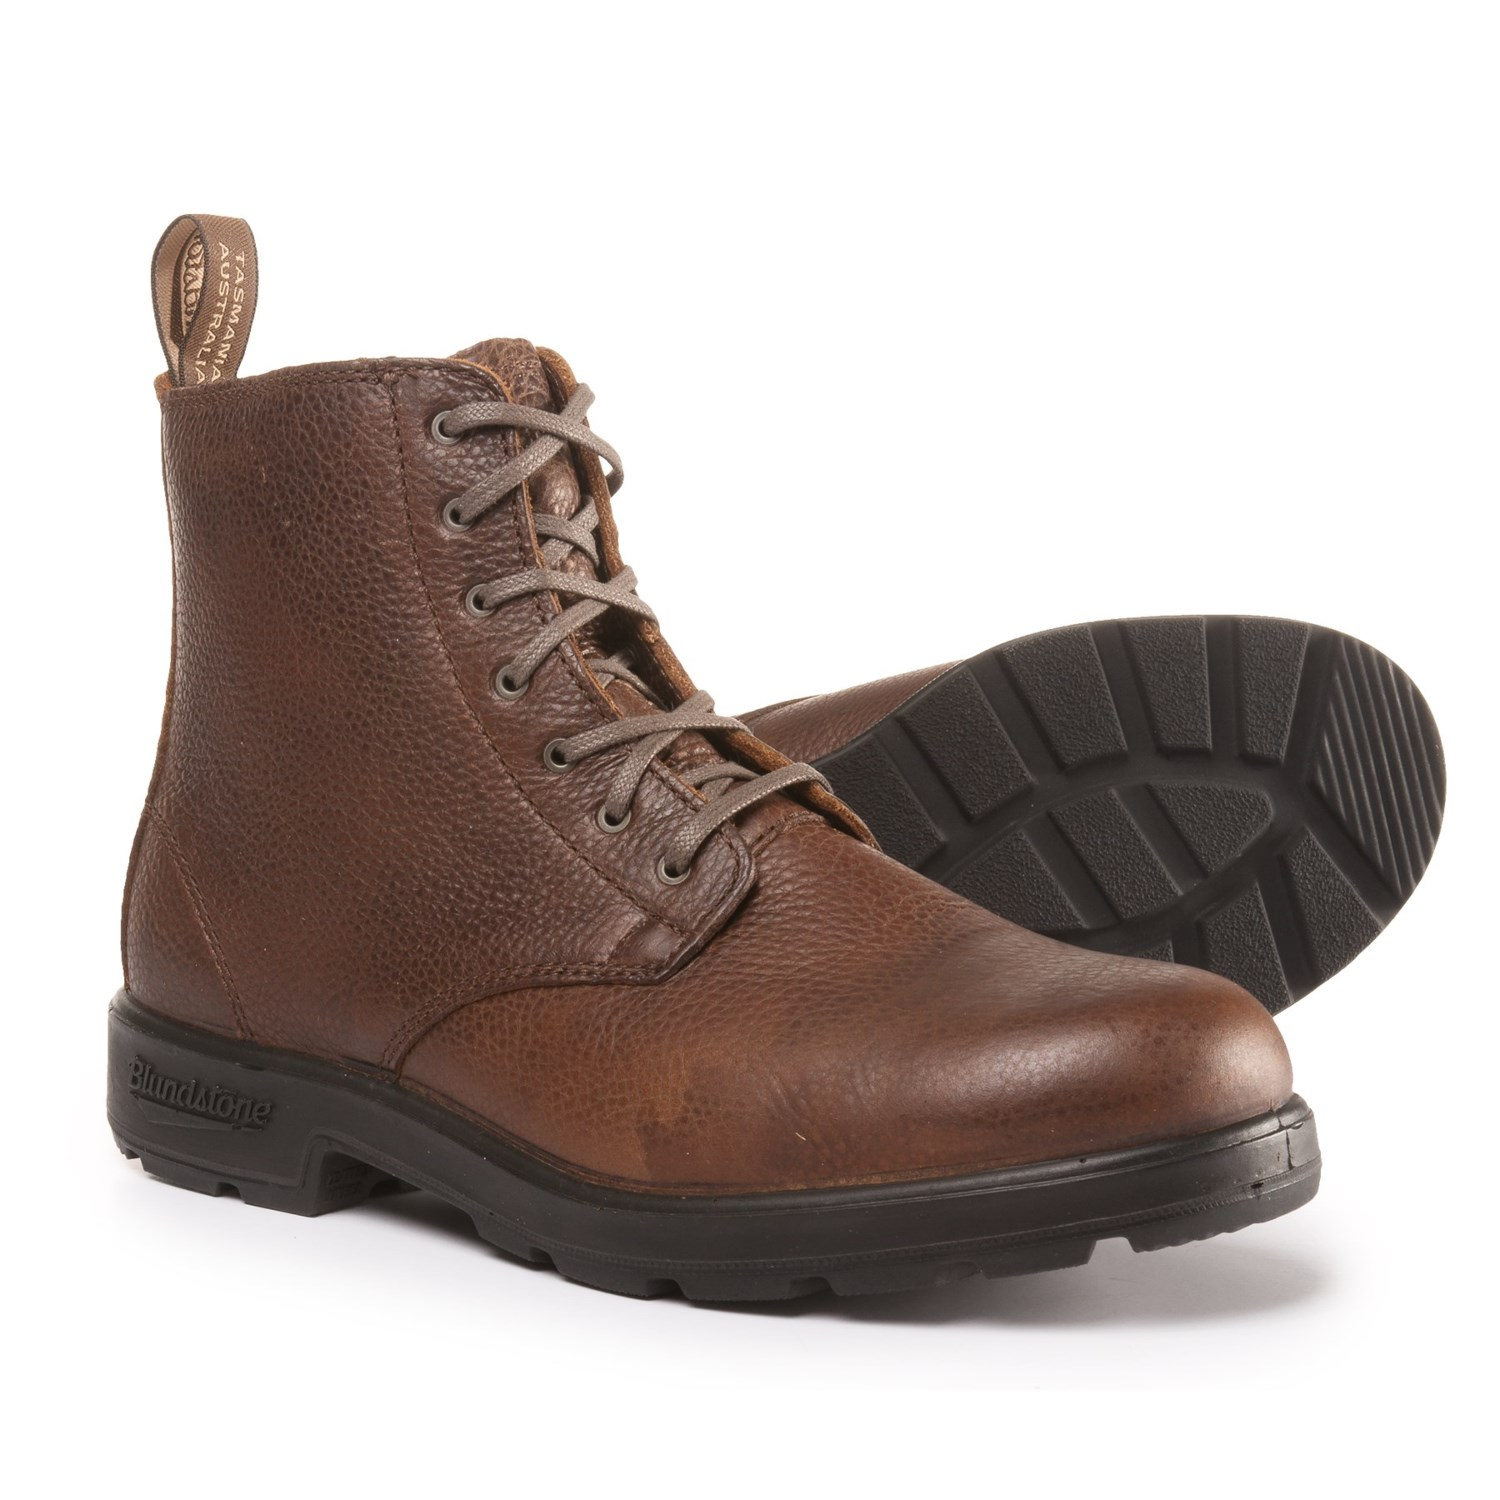 b2c0f870c29 Blundstone Lace-Up Boots - Leather, Factory 2nds (For Men)